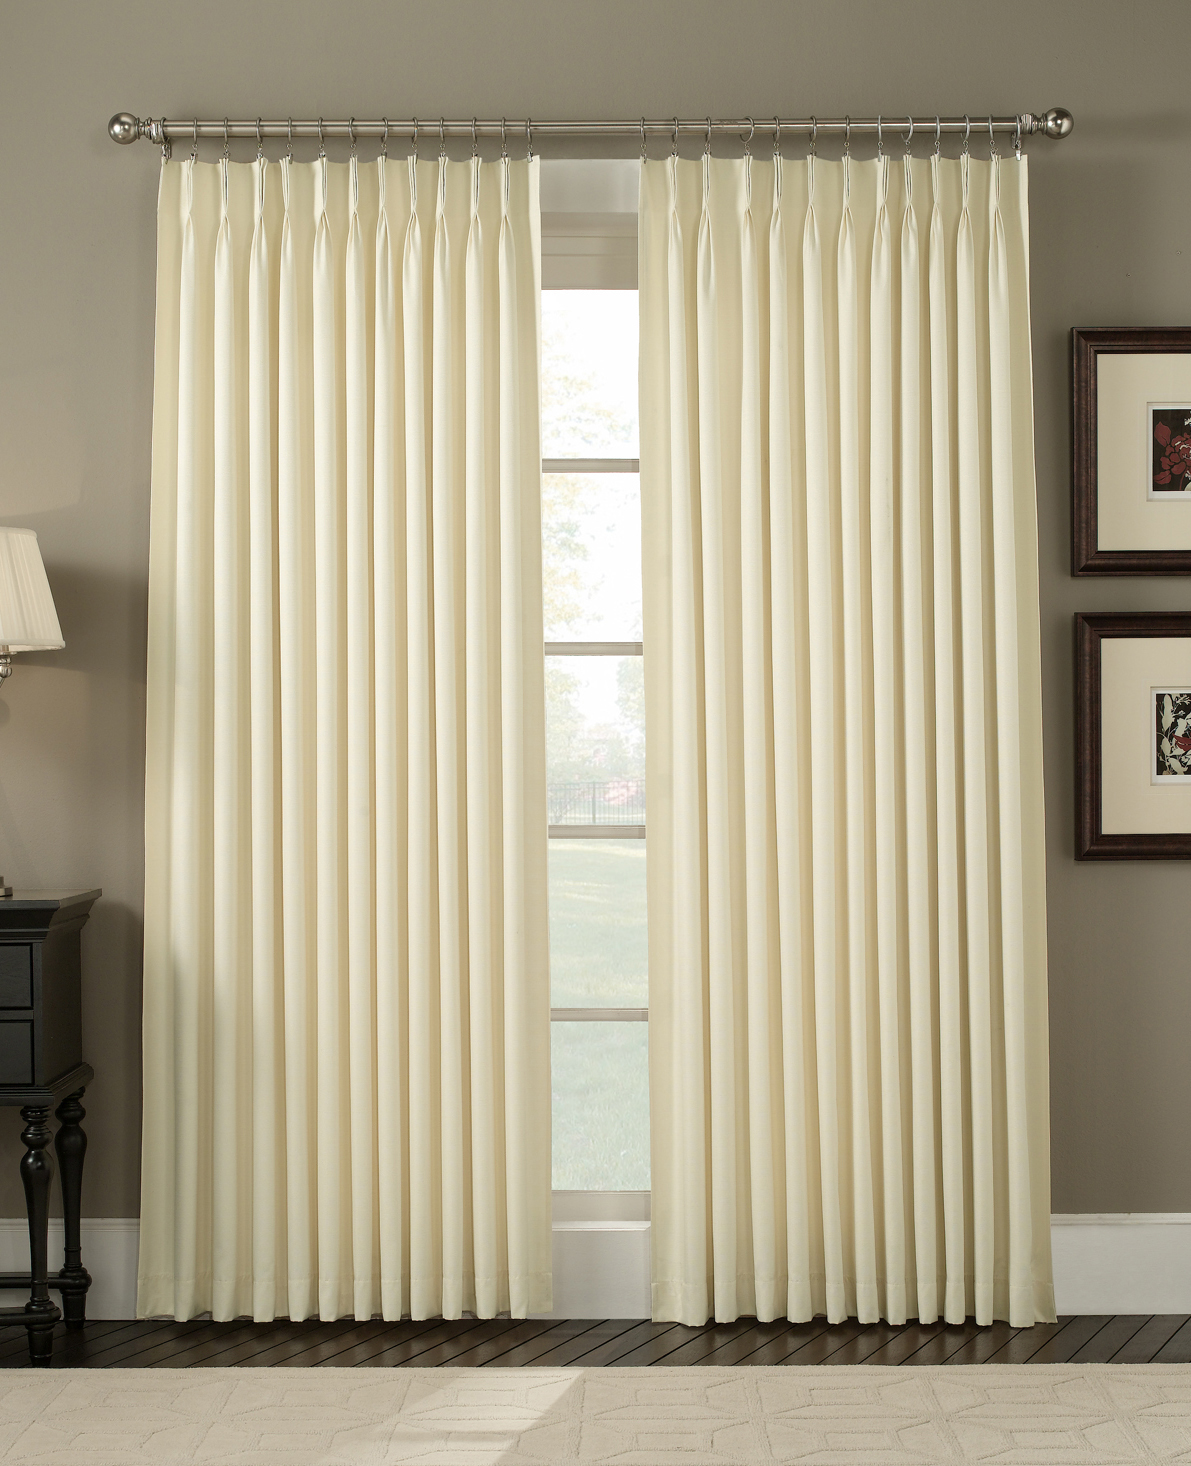 Remarkable Living Room Window Curtains Ideas 1191 x 1466 · 996 kB · jpeg